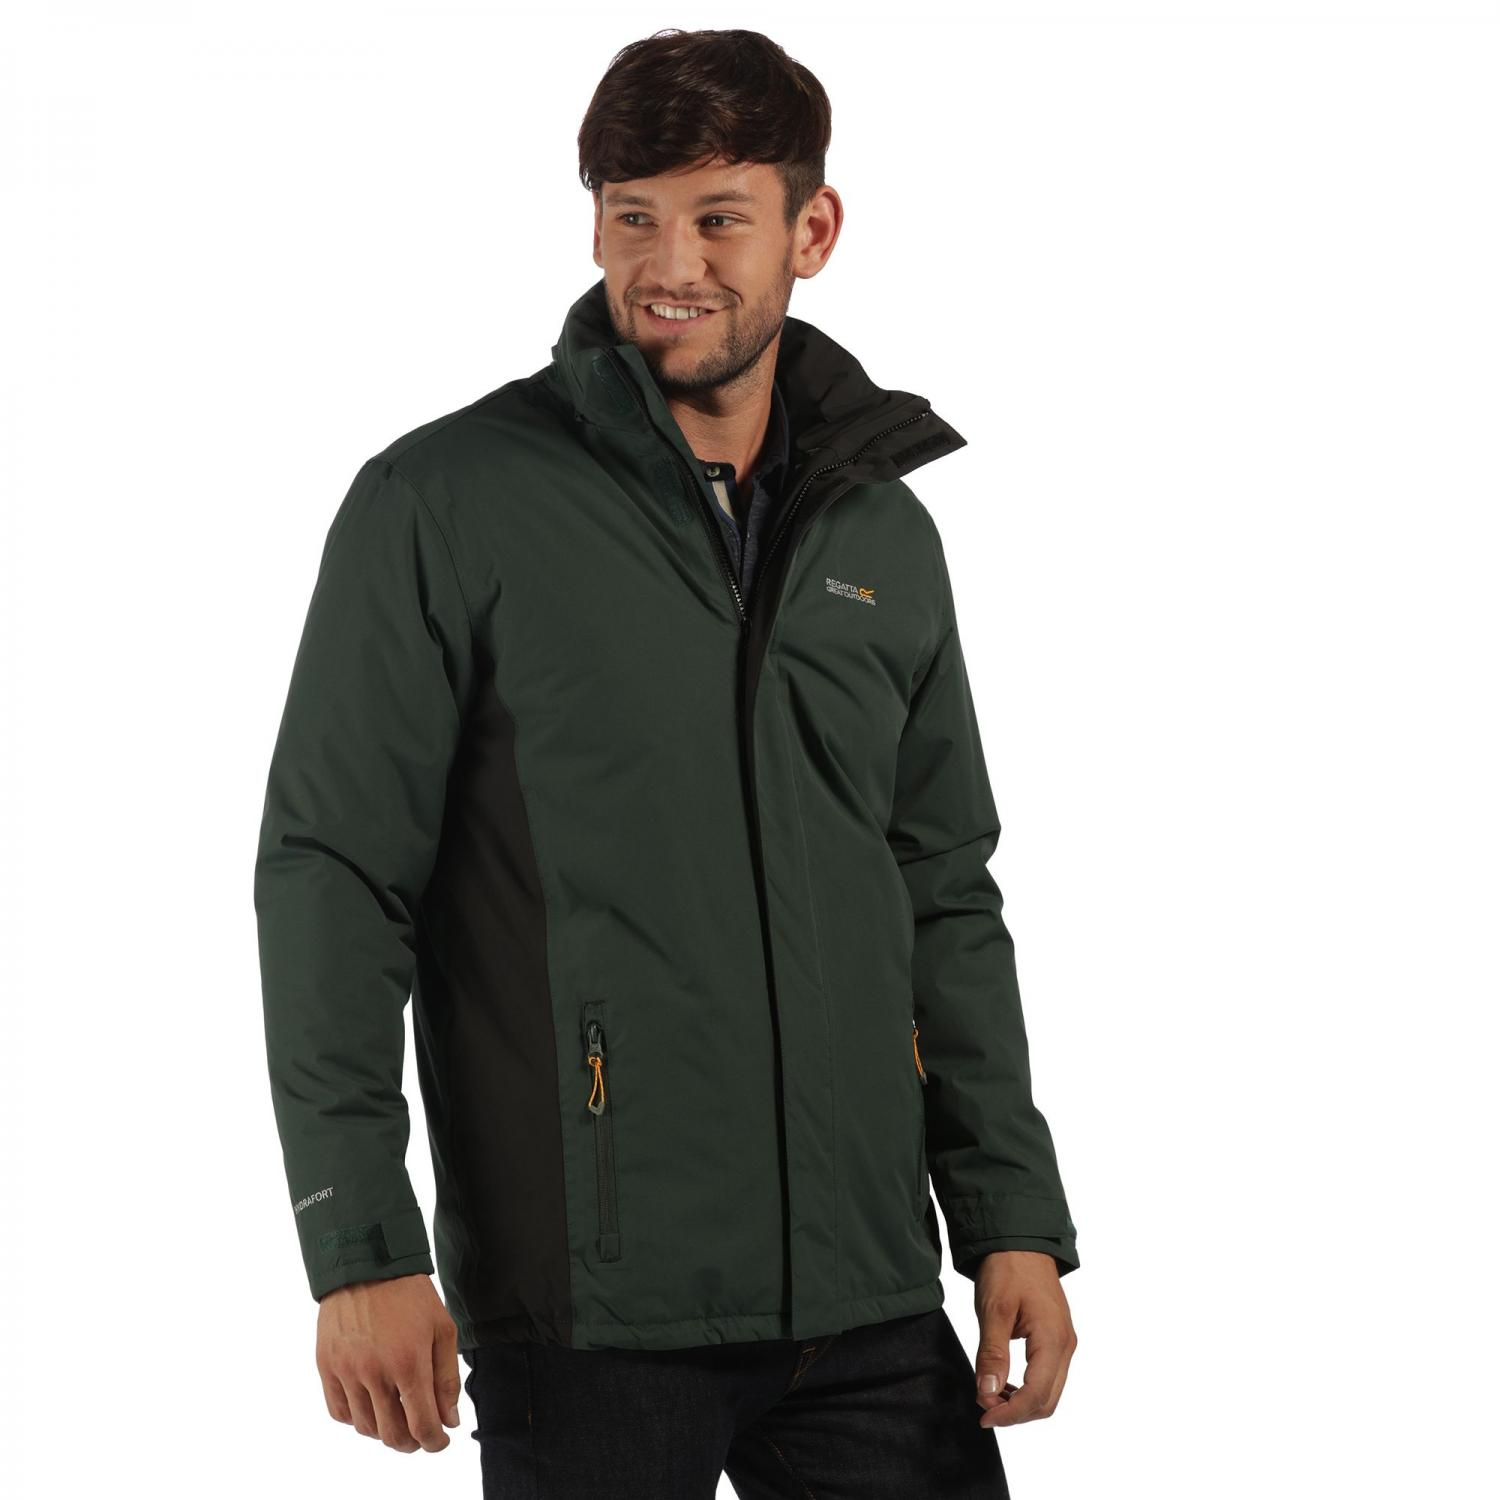 Thornridge Jacket Dark Spruce Black